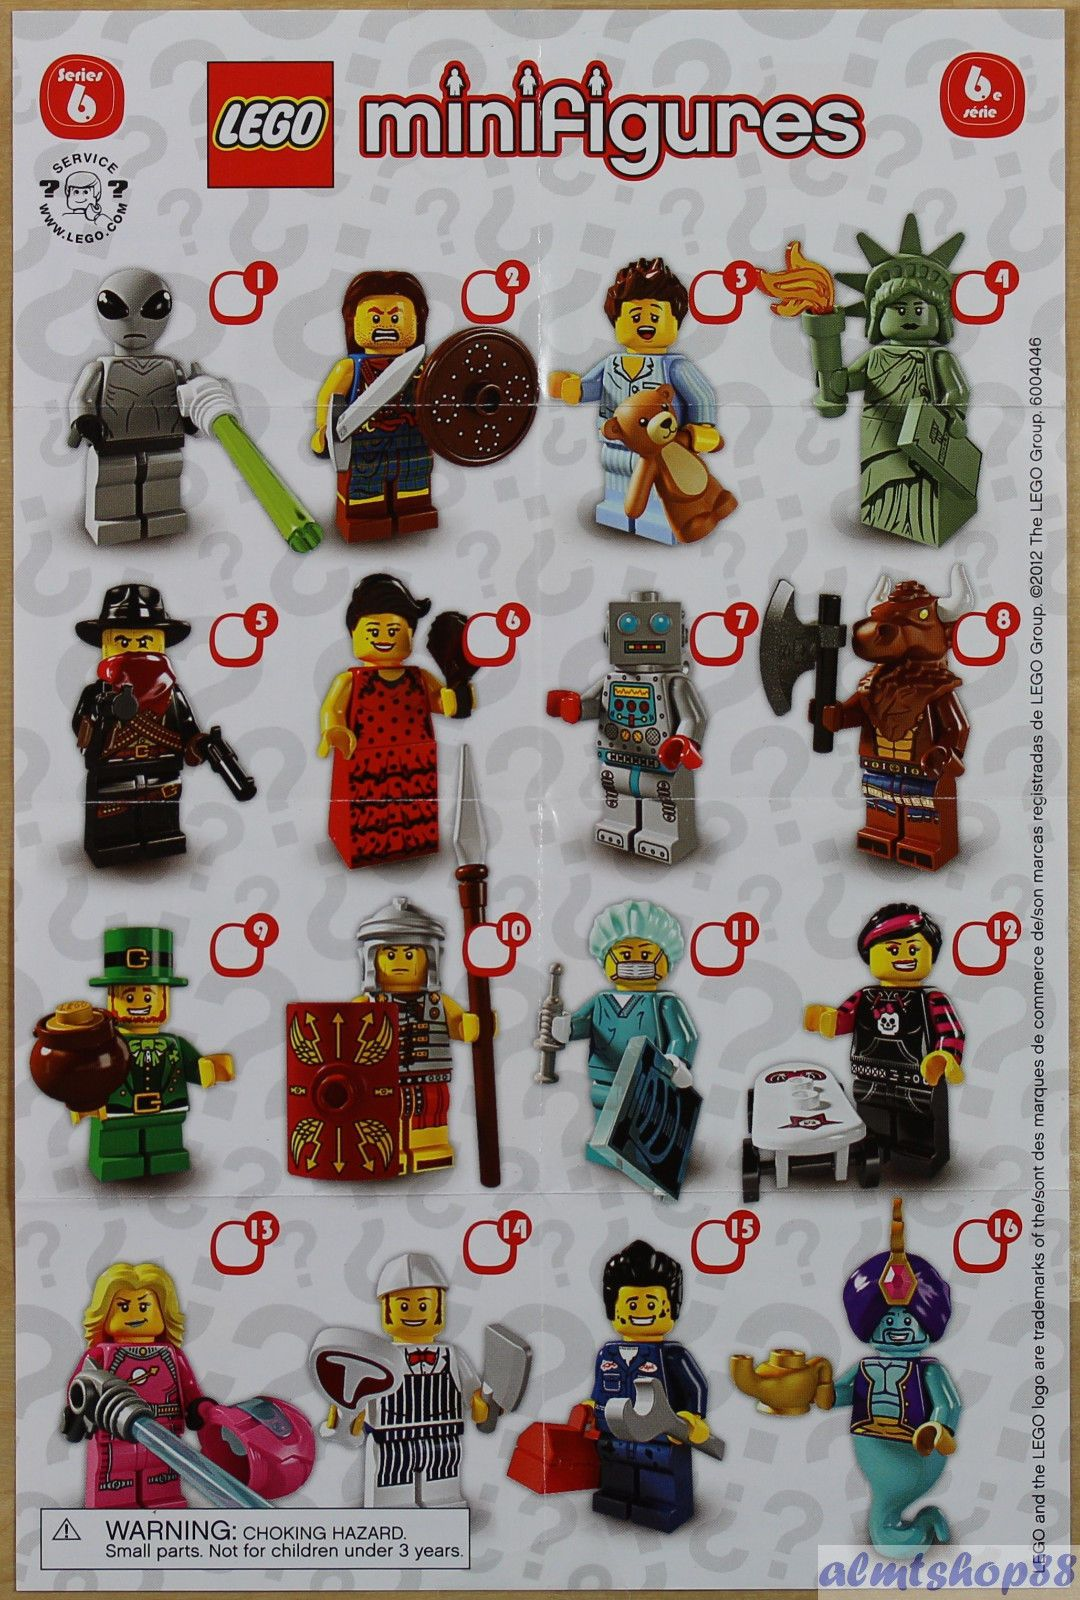 lego mini poster leaflet minifigures series 1 2 3 4 5 6 7 8 9 10 11 12 13 14 15 pinterest. Black Bedroom Furniture Sets. Home Design Ideas